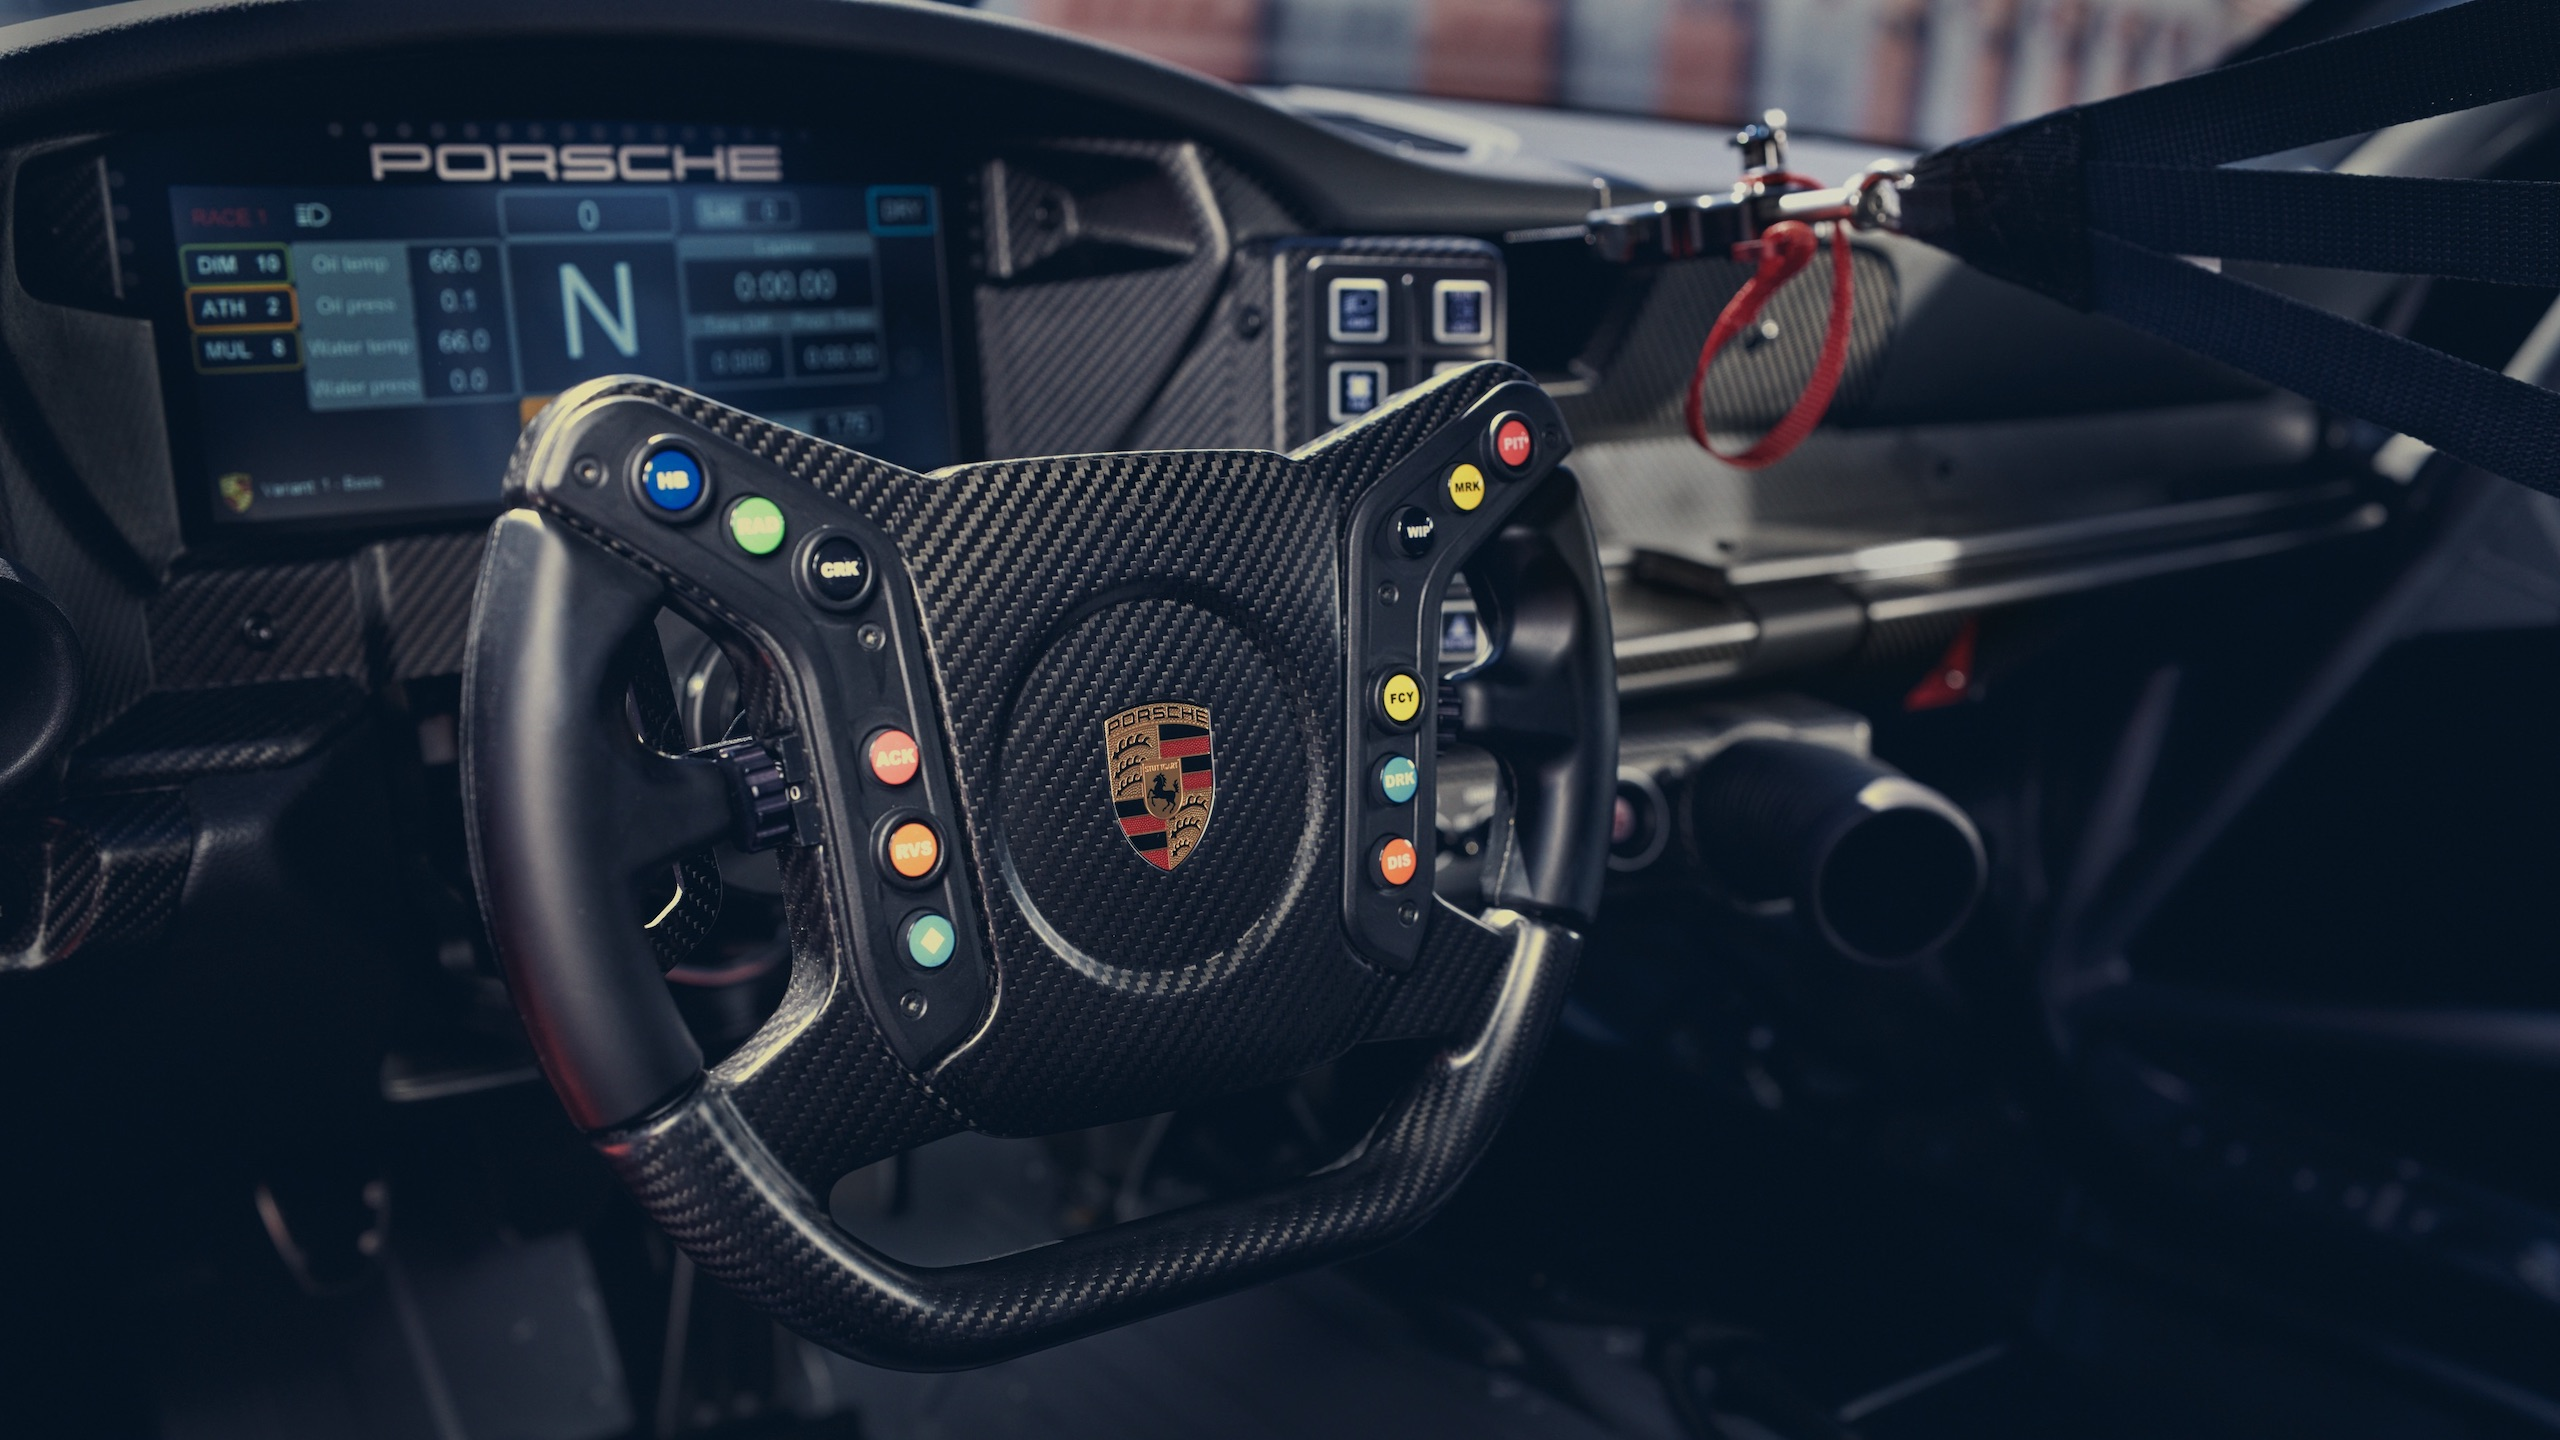 Porsche 911 GT3 interior steering wheel detail